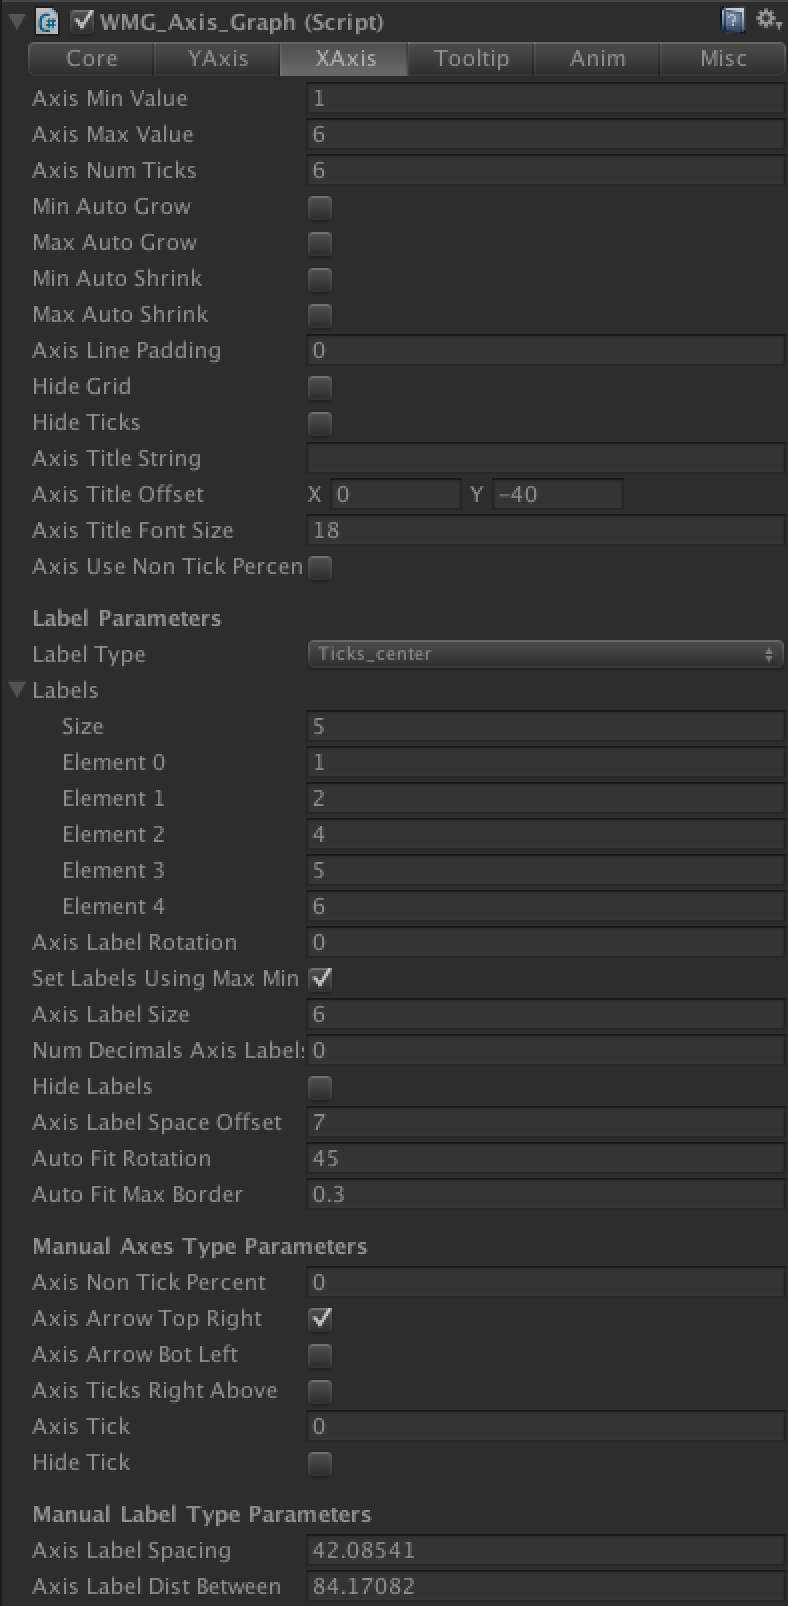 GraphxAxis-Settings.png